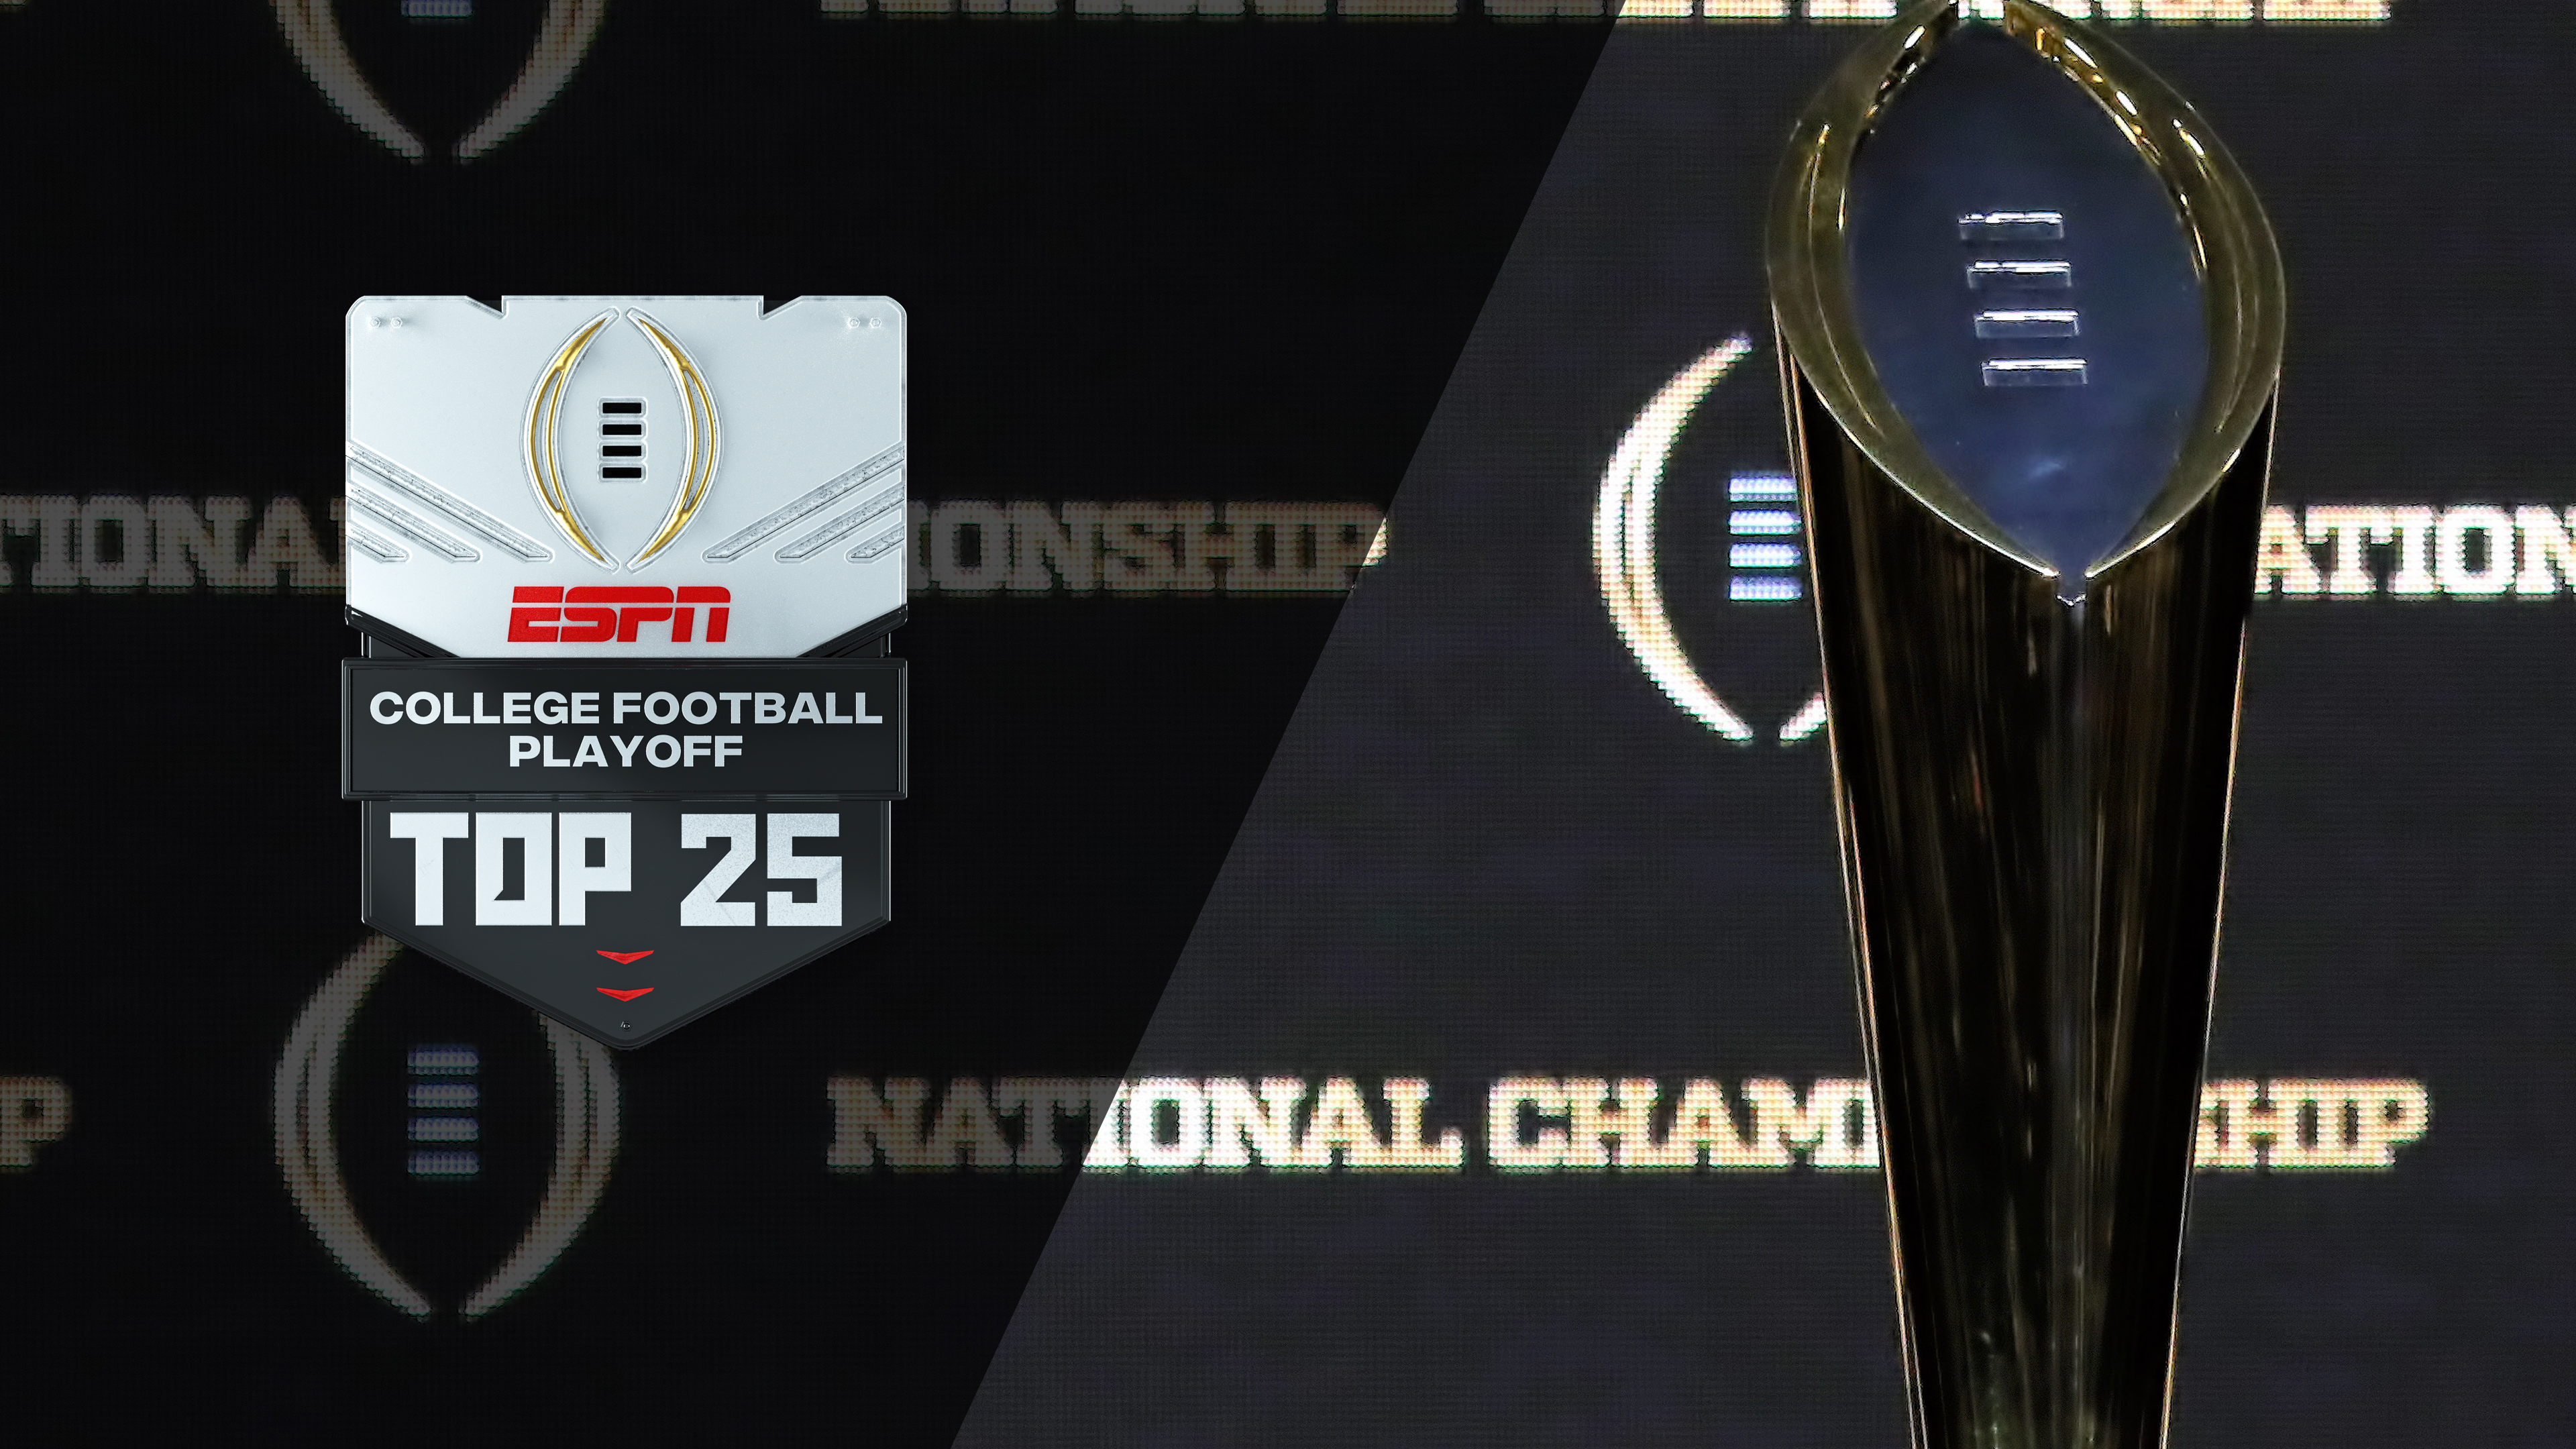 Tue, 10/23 - College Football Playoff: Top 25 Presented by Chick-fil-A